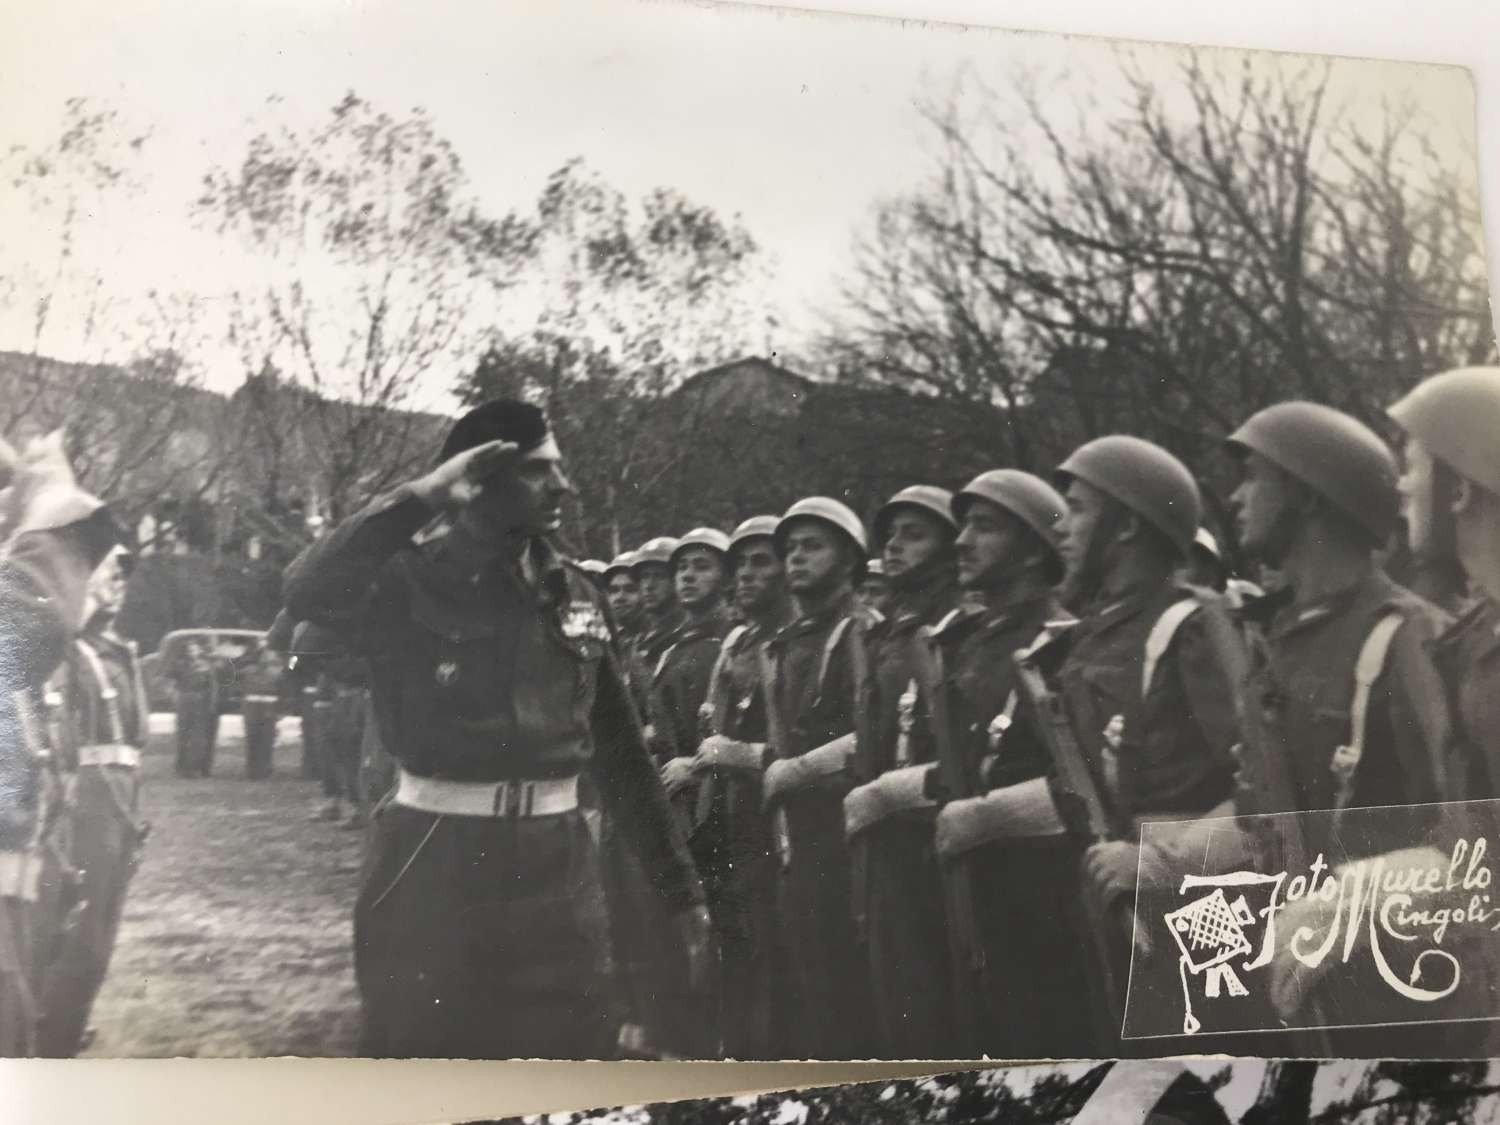 A pair of postcard sized images of the Polish forces in Italy